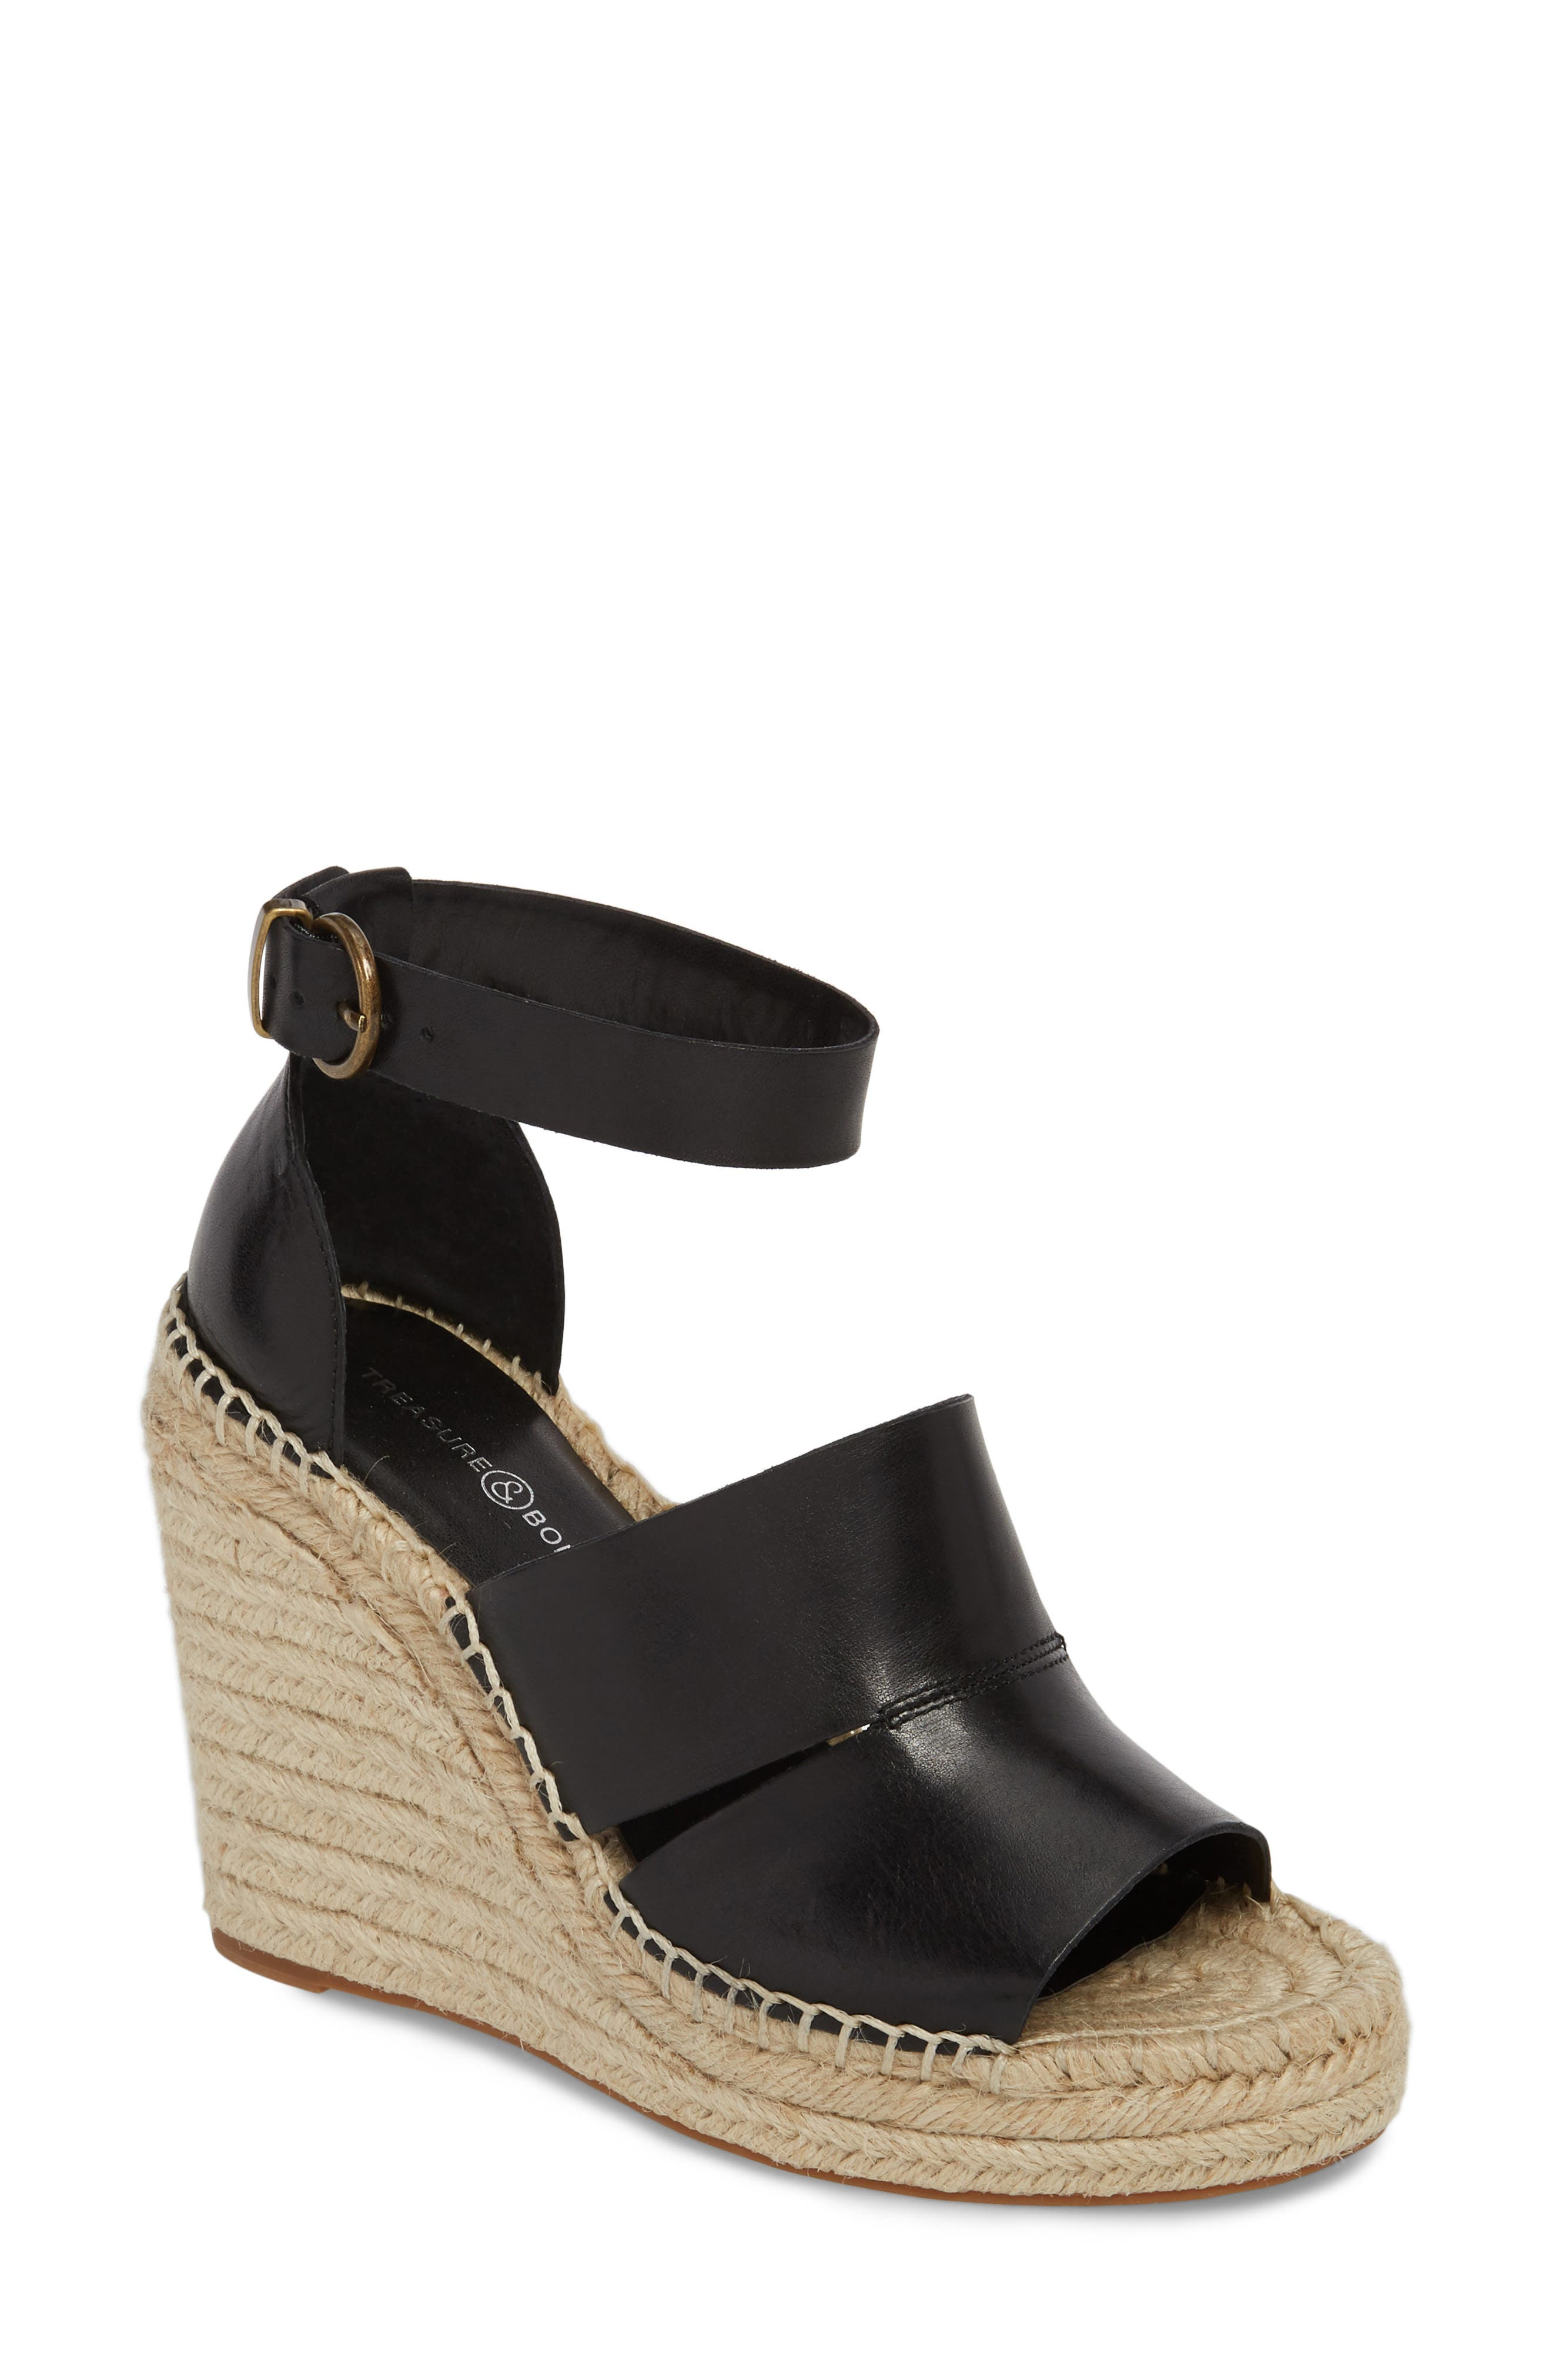 Sannibel Platform Wedge Sandal,                             Main thumbnail 1, color,                             BLACK LEATHER